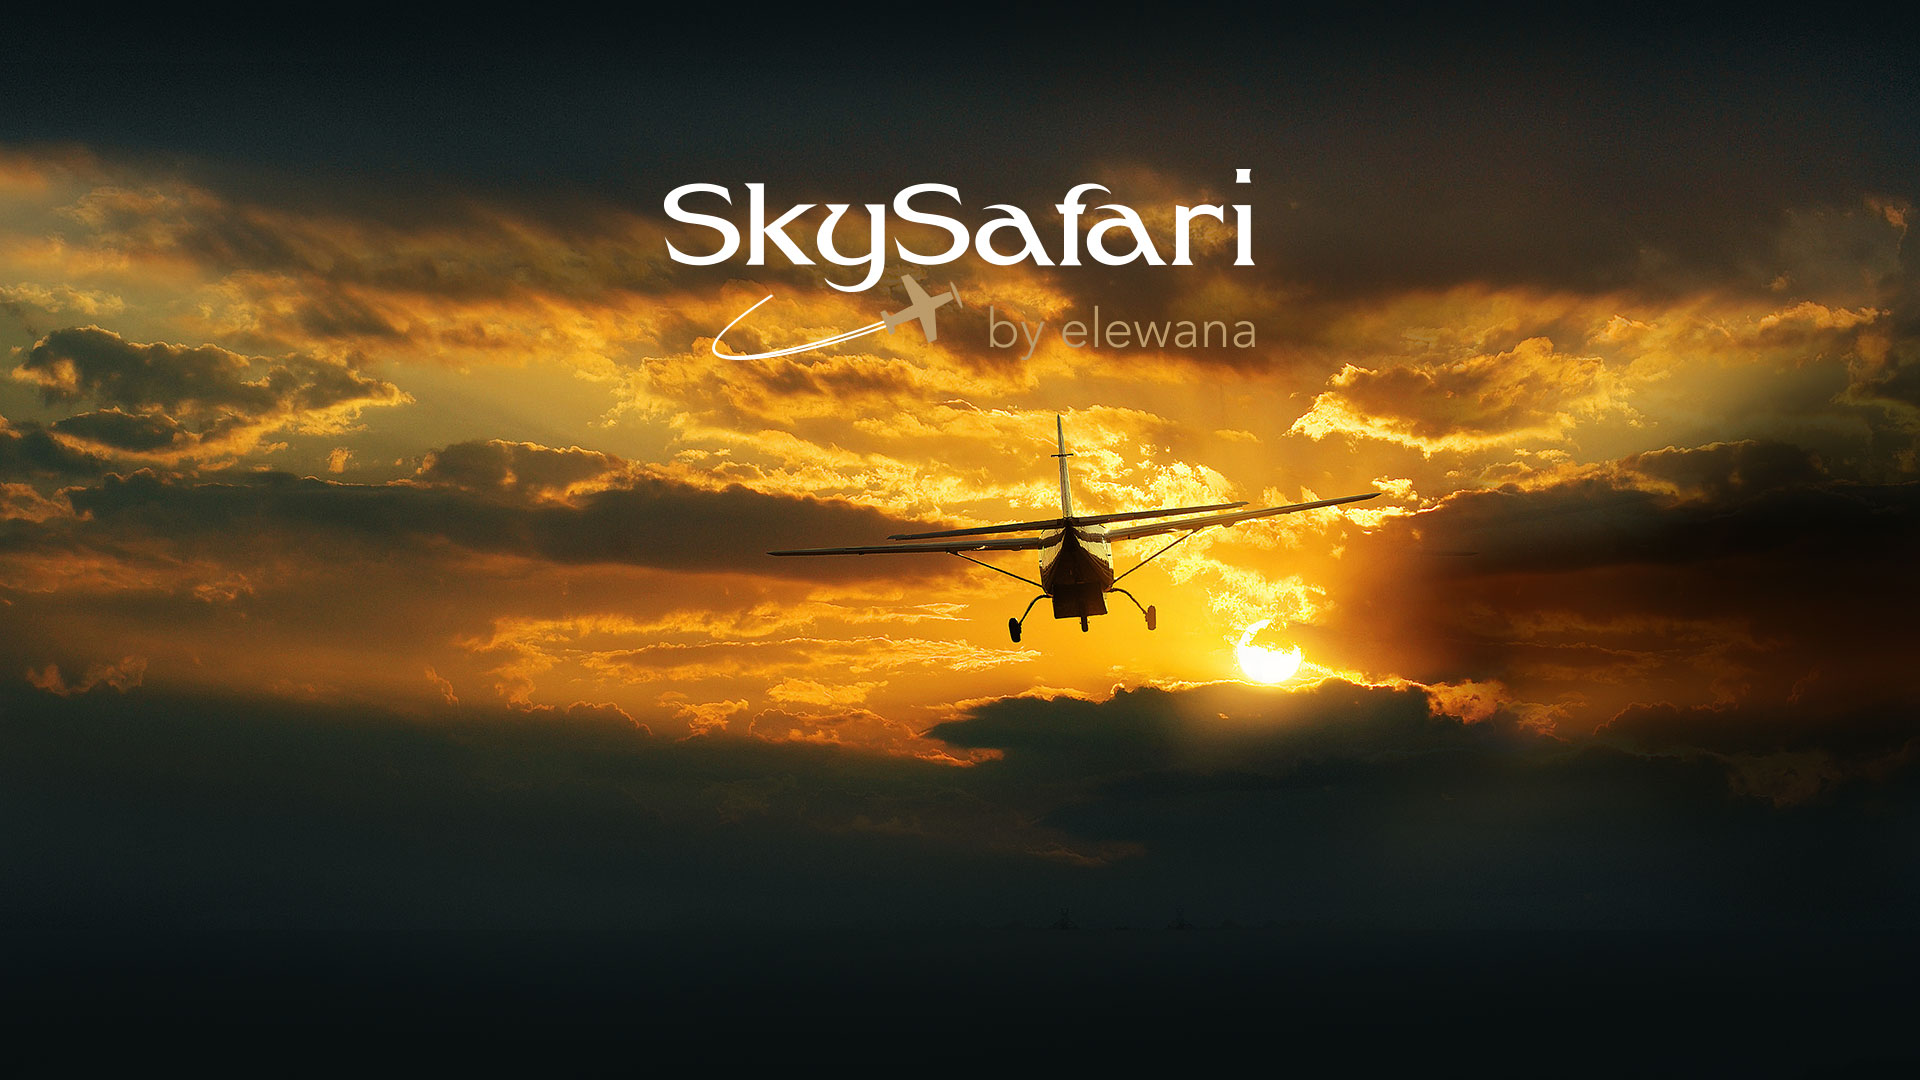 skysafari sunset